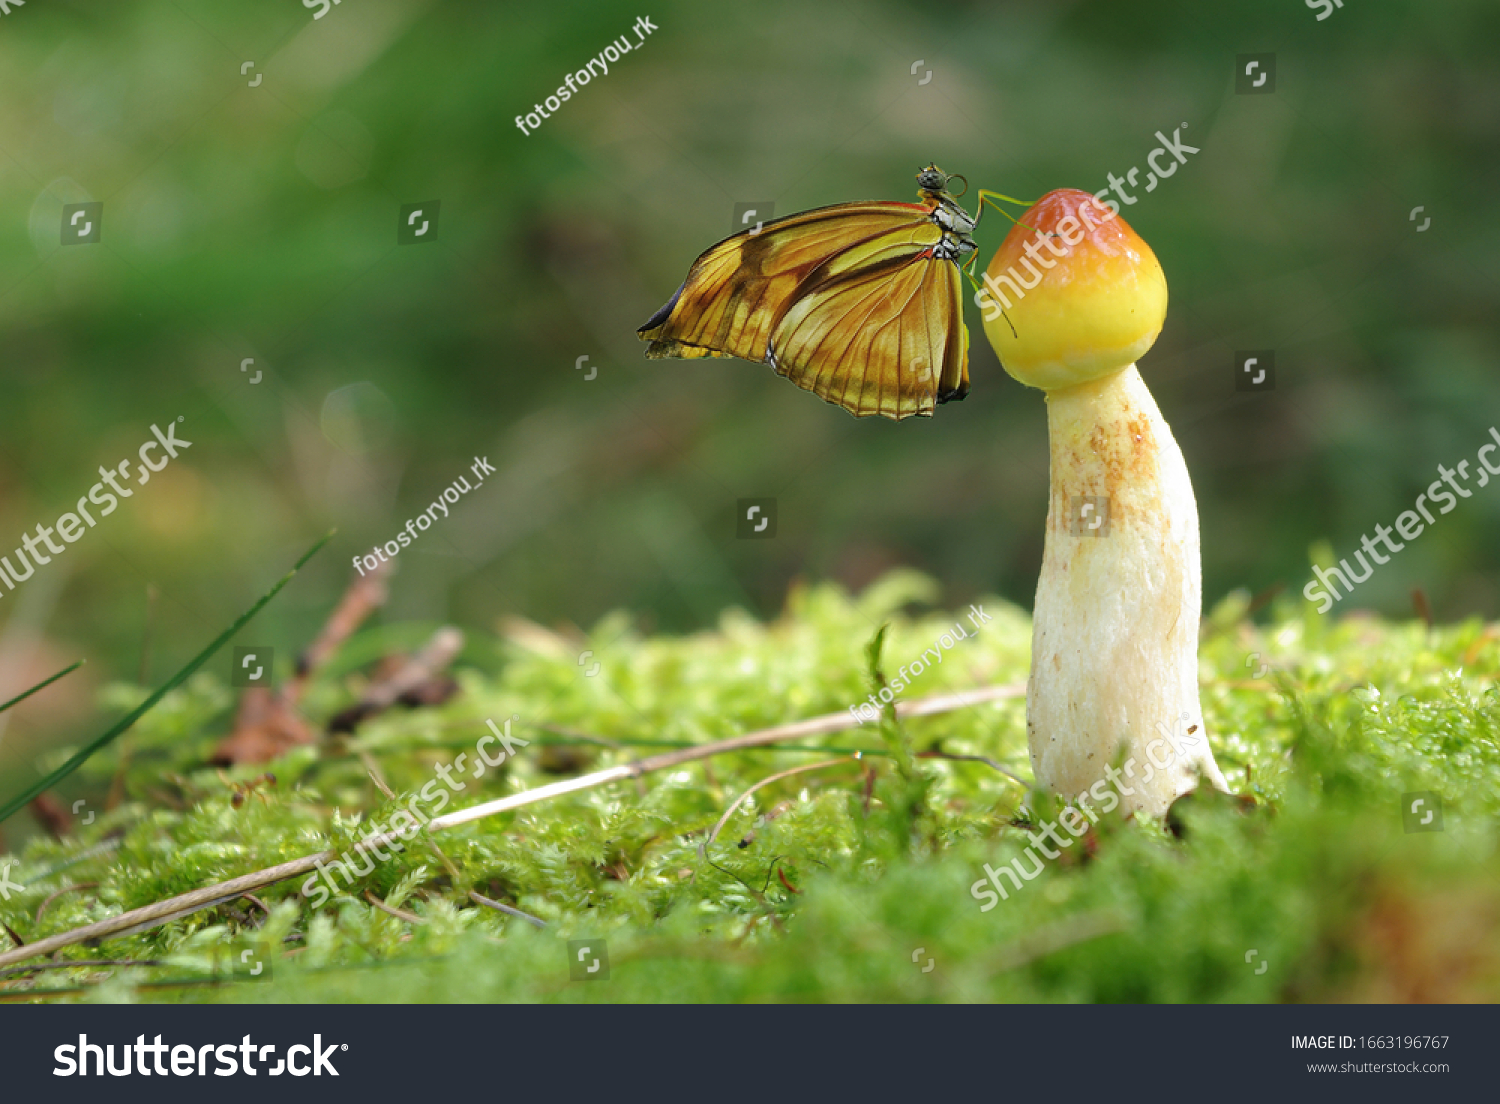 A beautiful little butterfly seen from the side is sitting on a mushroom. Cute mushroom in the summer with butterfly and ladybug.